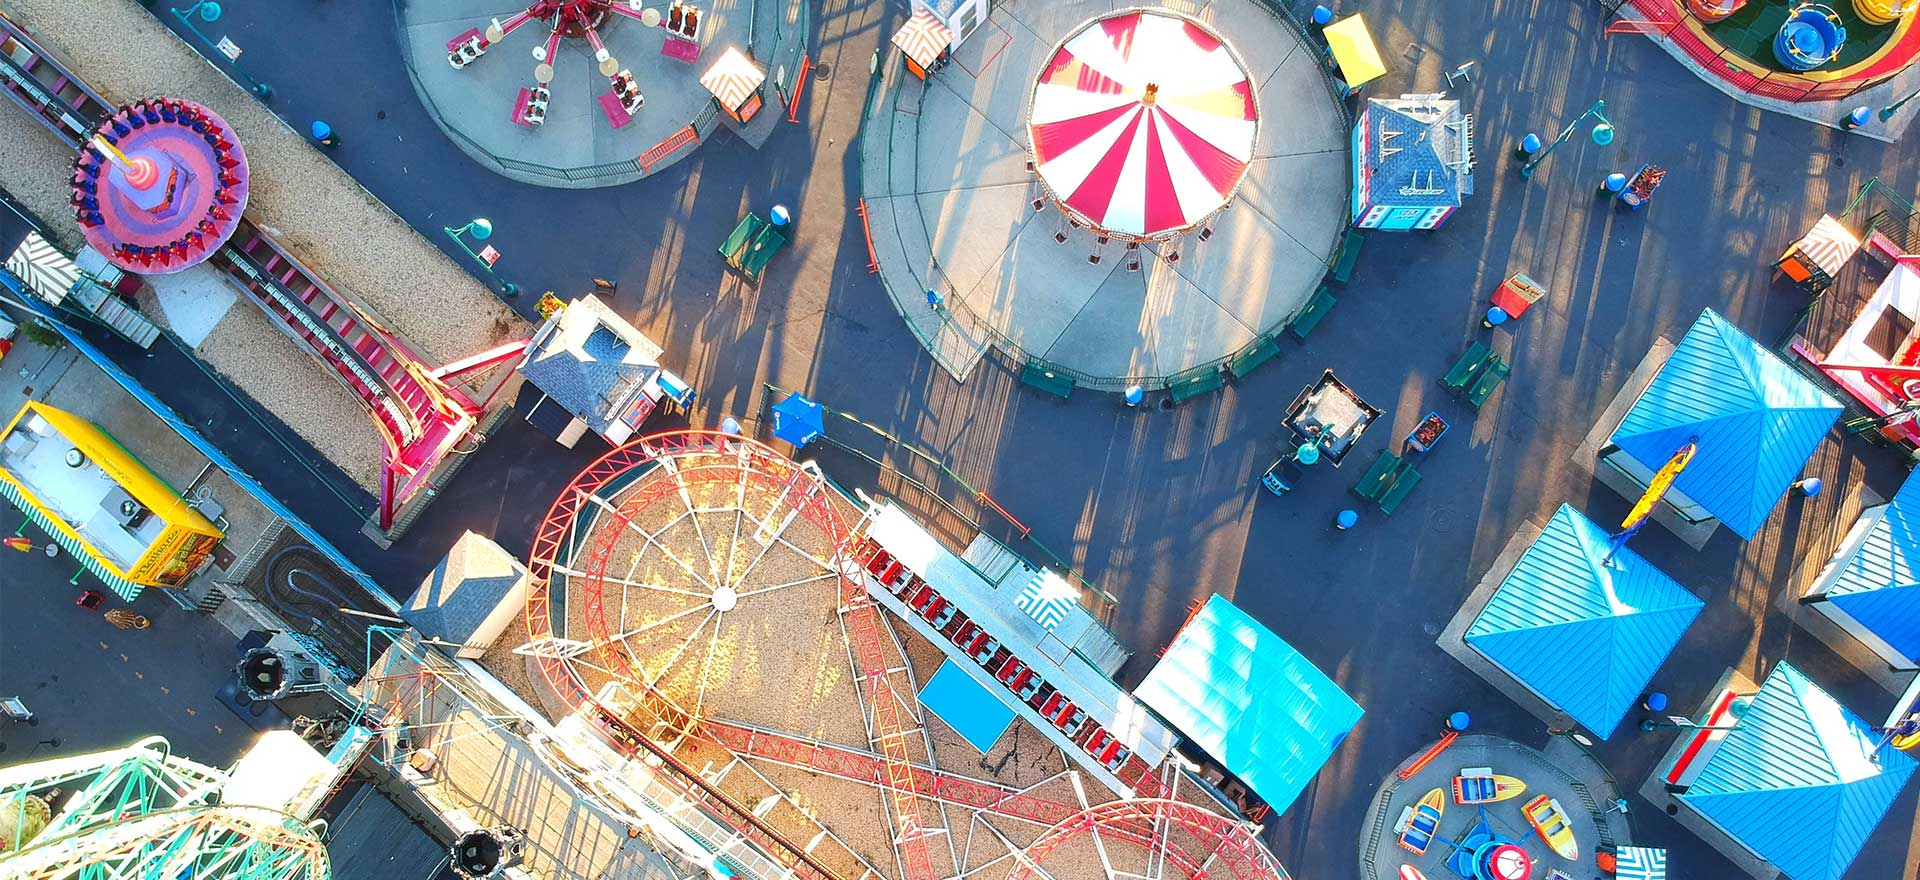 Birds eye view of a fairground